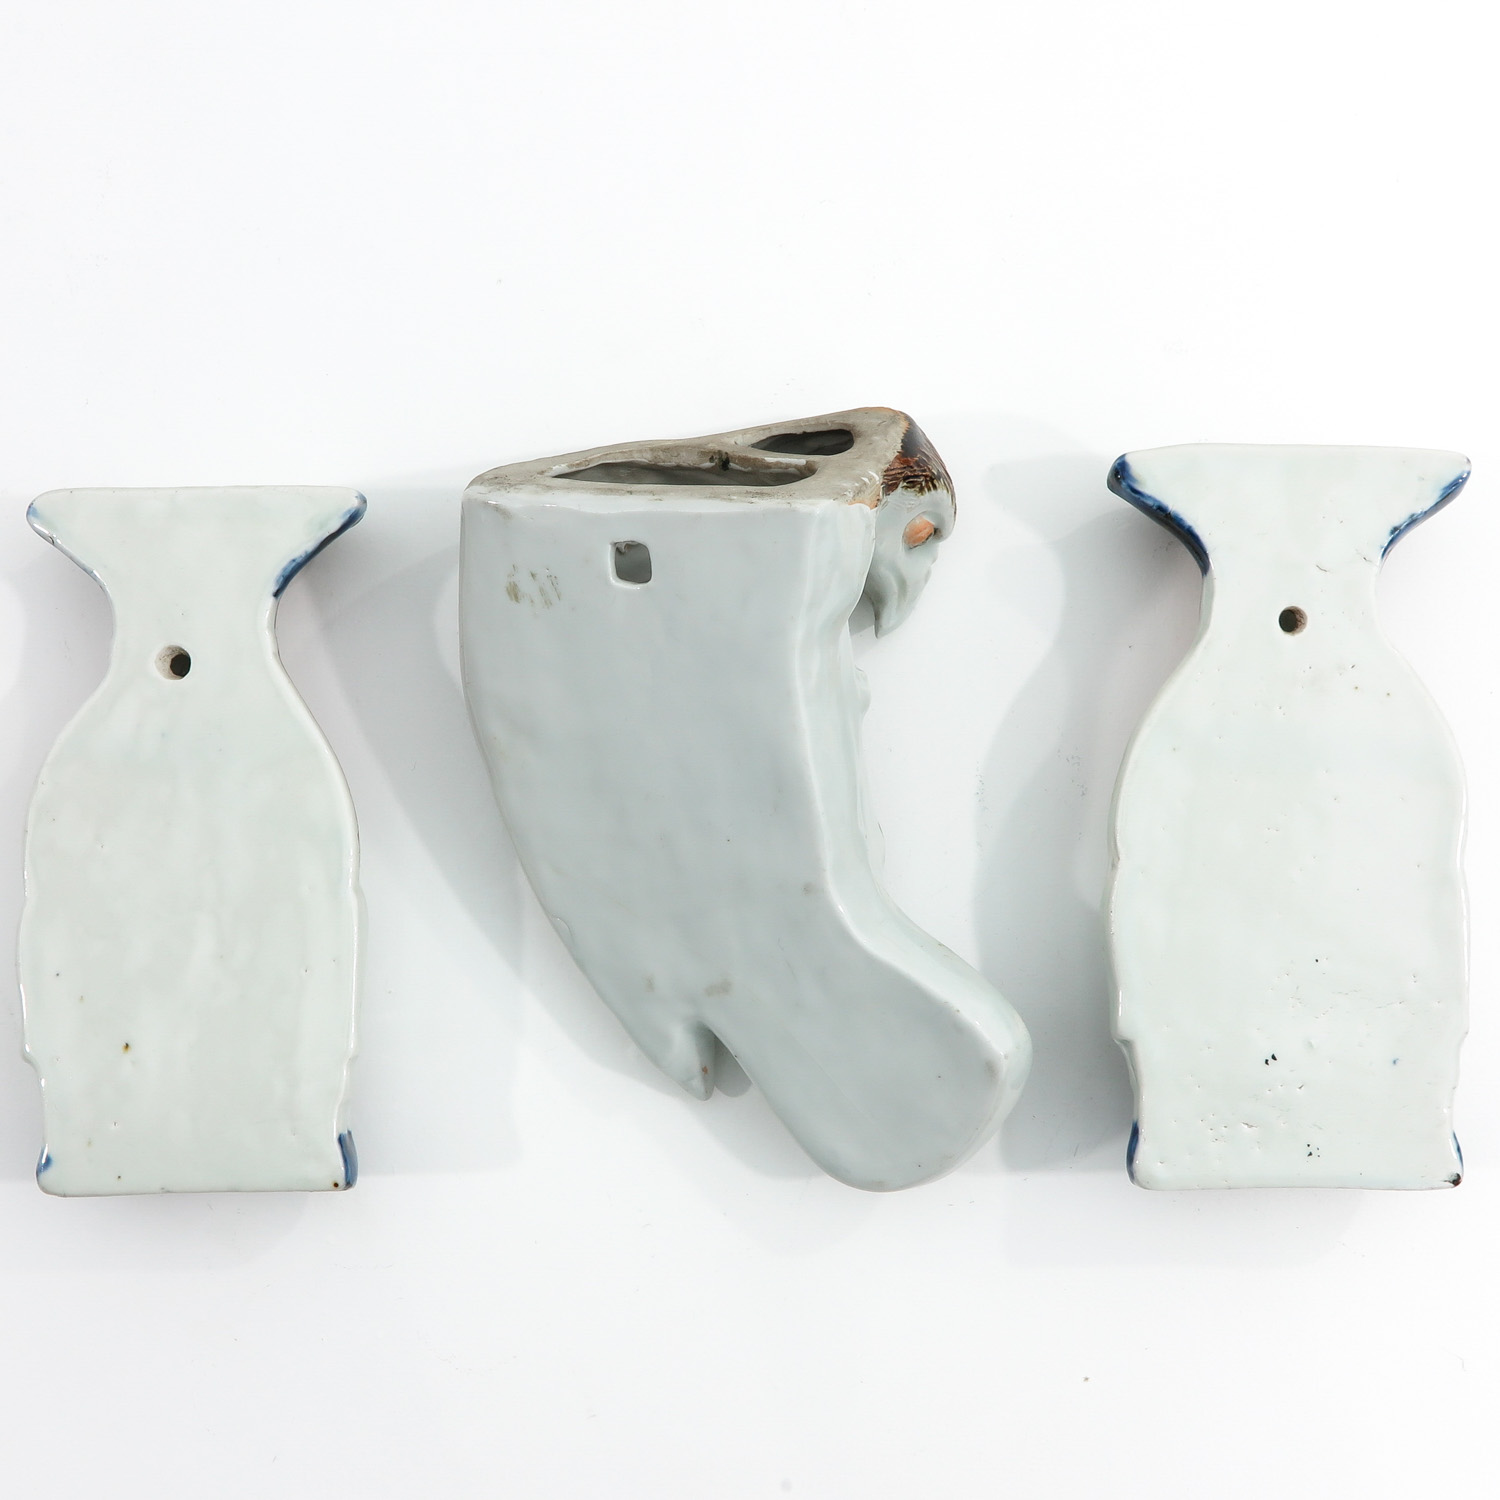 A Collection of 3 Wall Vases - Image 2 of 7